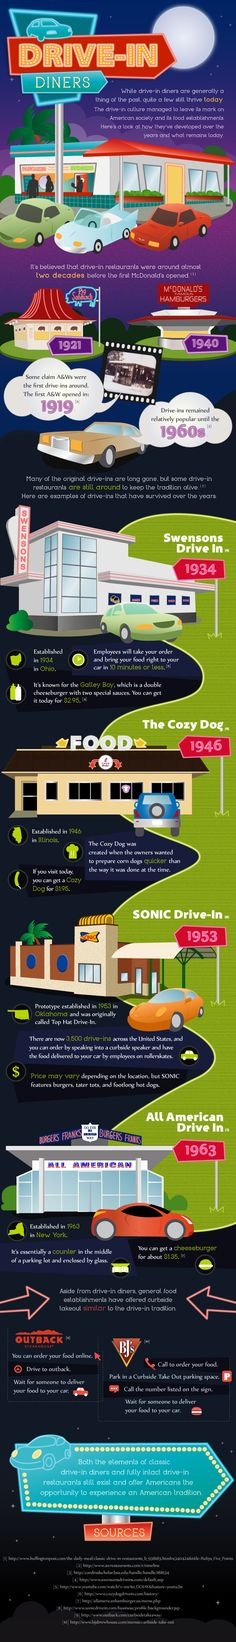 While drive-in diners are generally a thing of the past, quite a few still thrive today. The drive-in culture managed to leave its mark on American society and its food establishments. Here's a look at how they've developed over the years and what remains today.